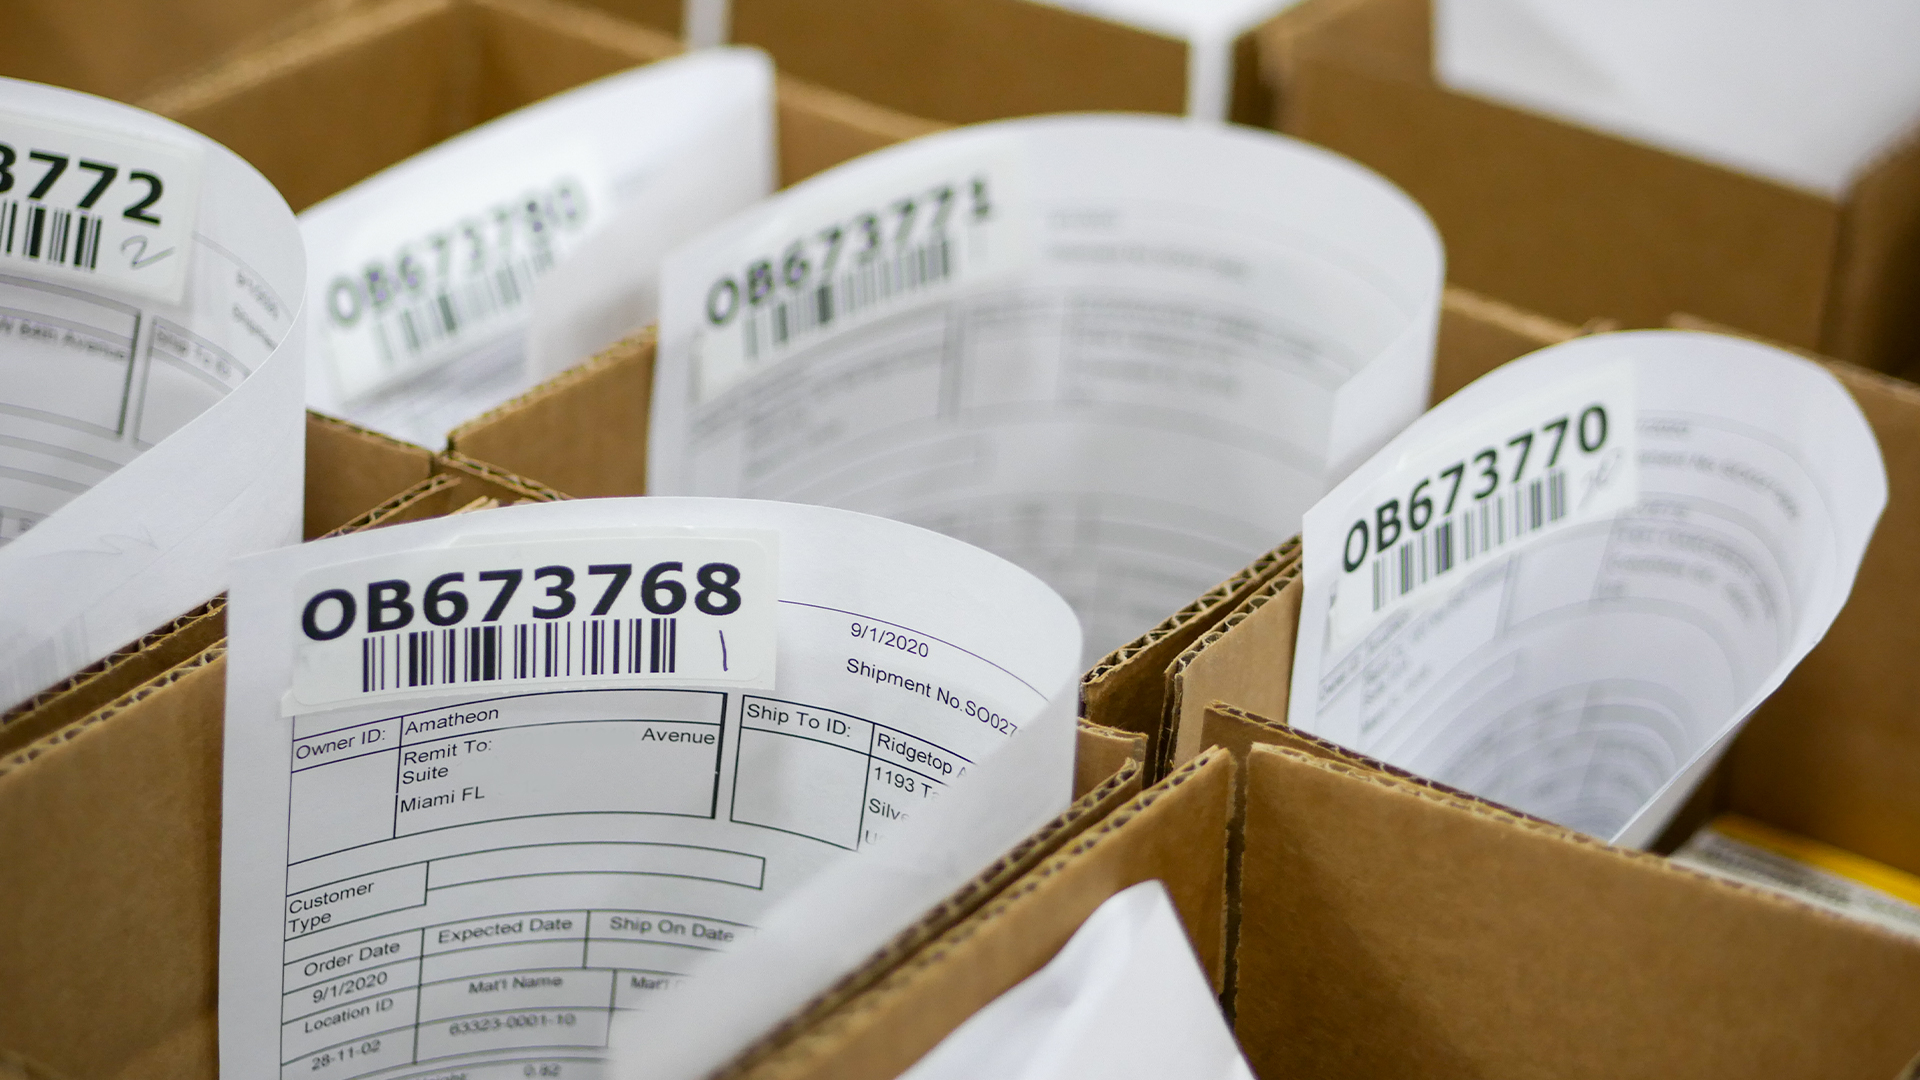 small boxes with order slips